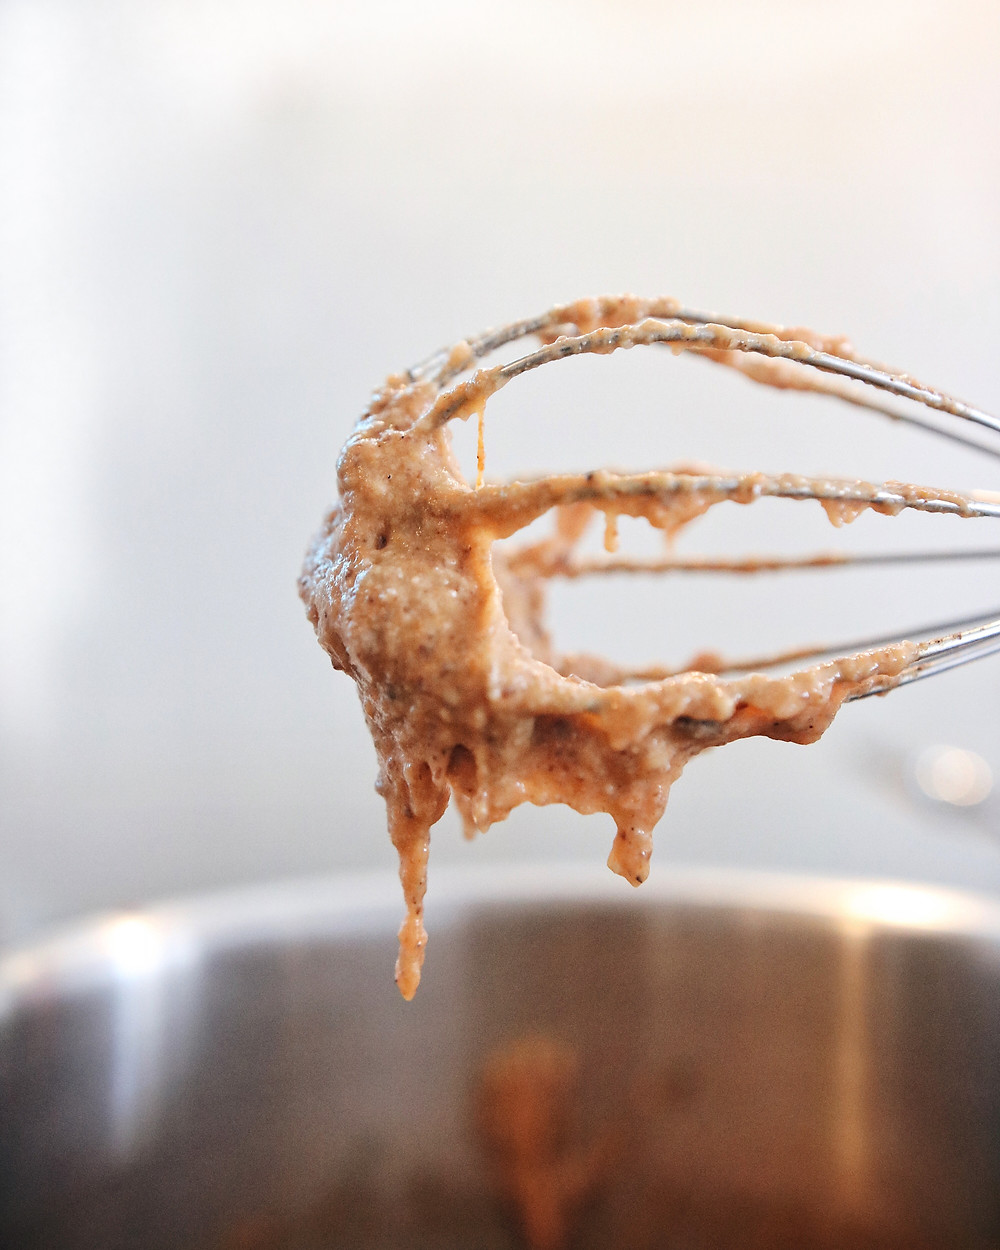 A whisk is in the air, while porridge drips from it.